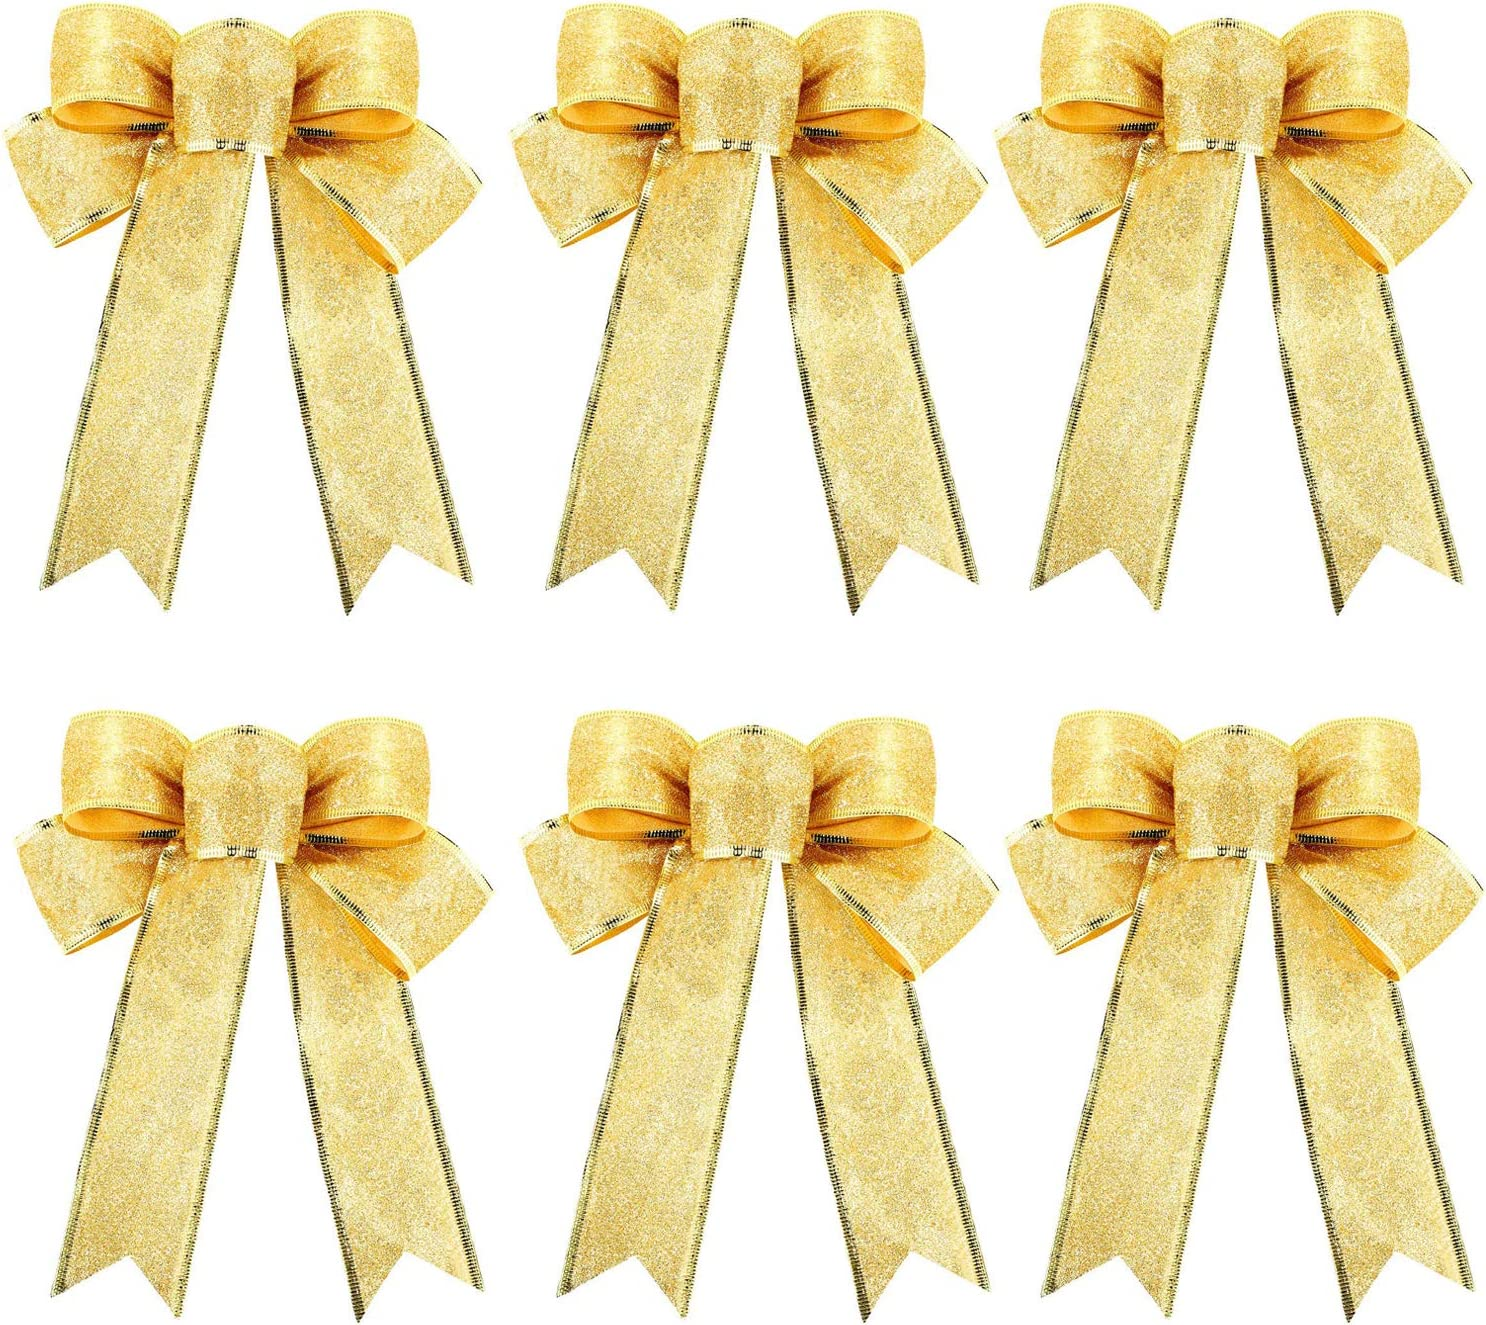 Gold Glitter Christmas Ribbon Bow Tree Wreath Decorations Windows Gifts Hanging Ornaments, 6 pcs